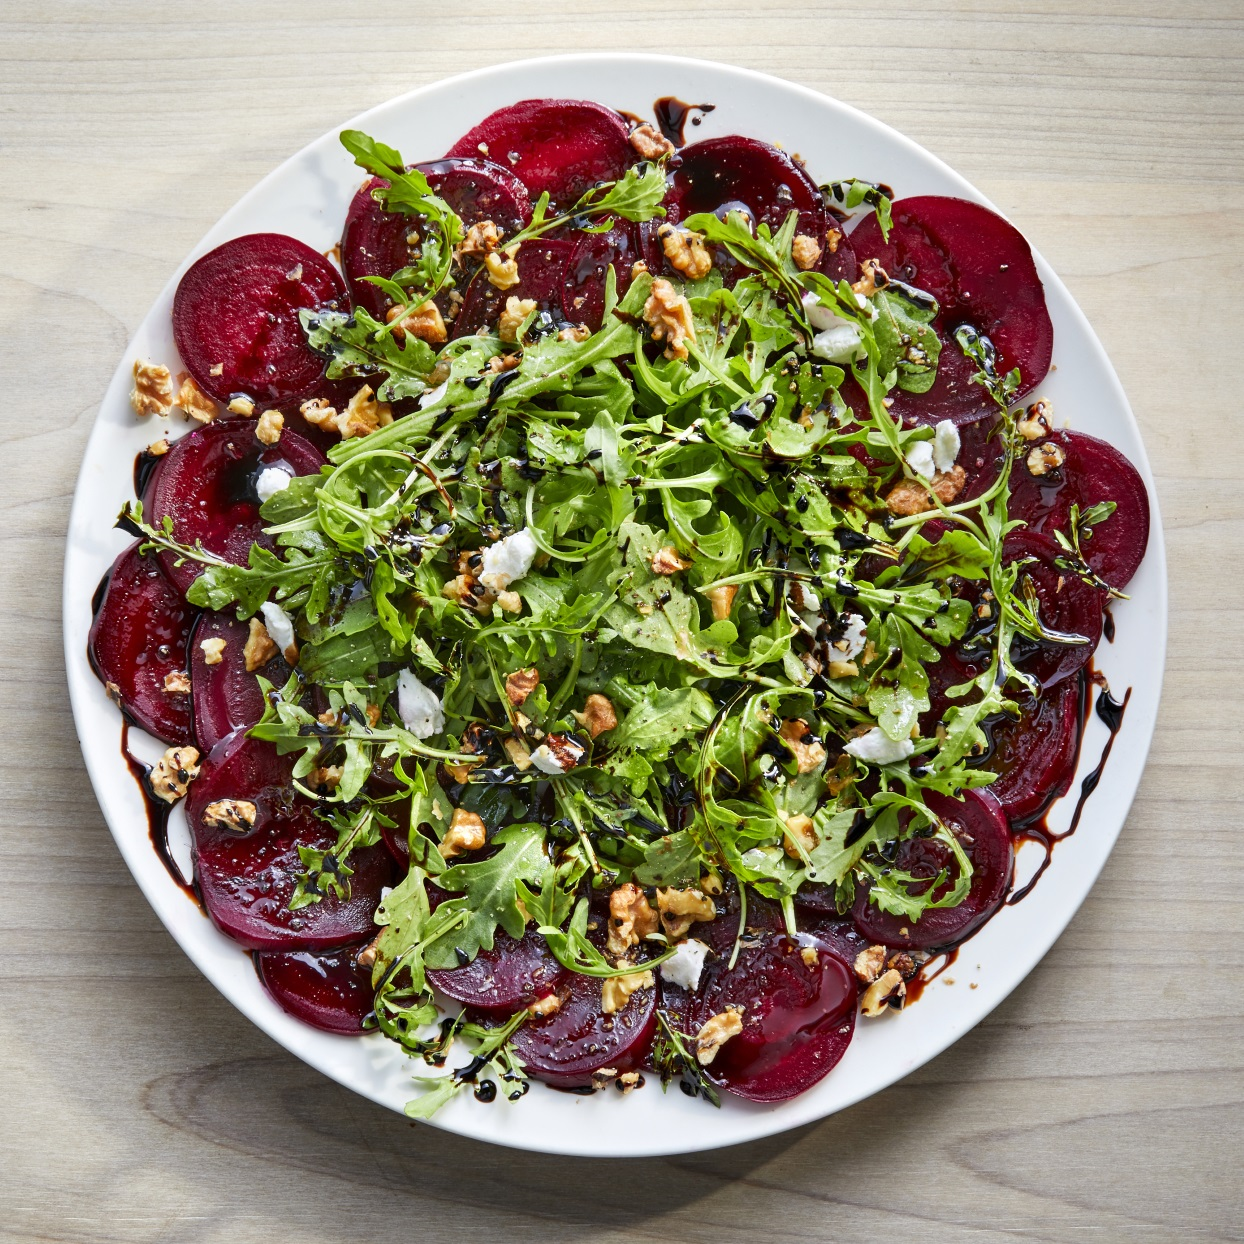 This stunning winter salad gets its sweet, earthy flavor from roasted beets and balsamic vinegar. Creamy goat cheese and peppery arugula add color and balance, while toasted walnuts add crunch. A mandoline is the best way to get thin, even slices from the roasted beets.